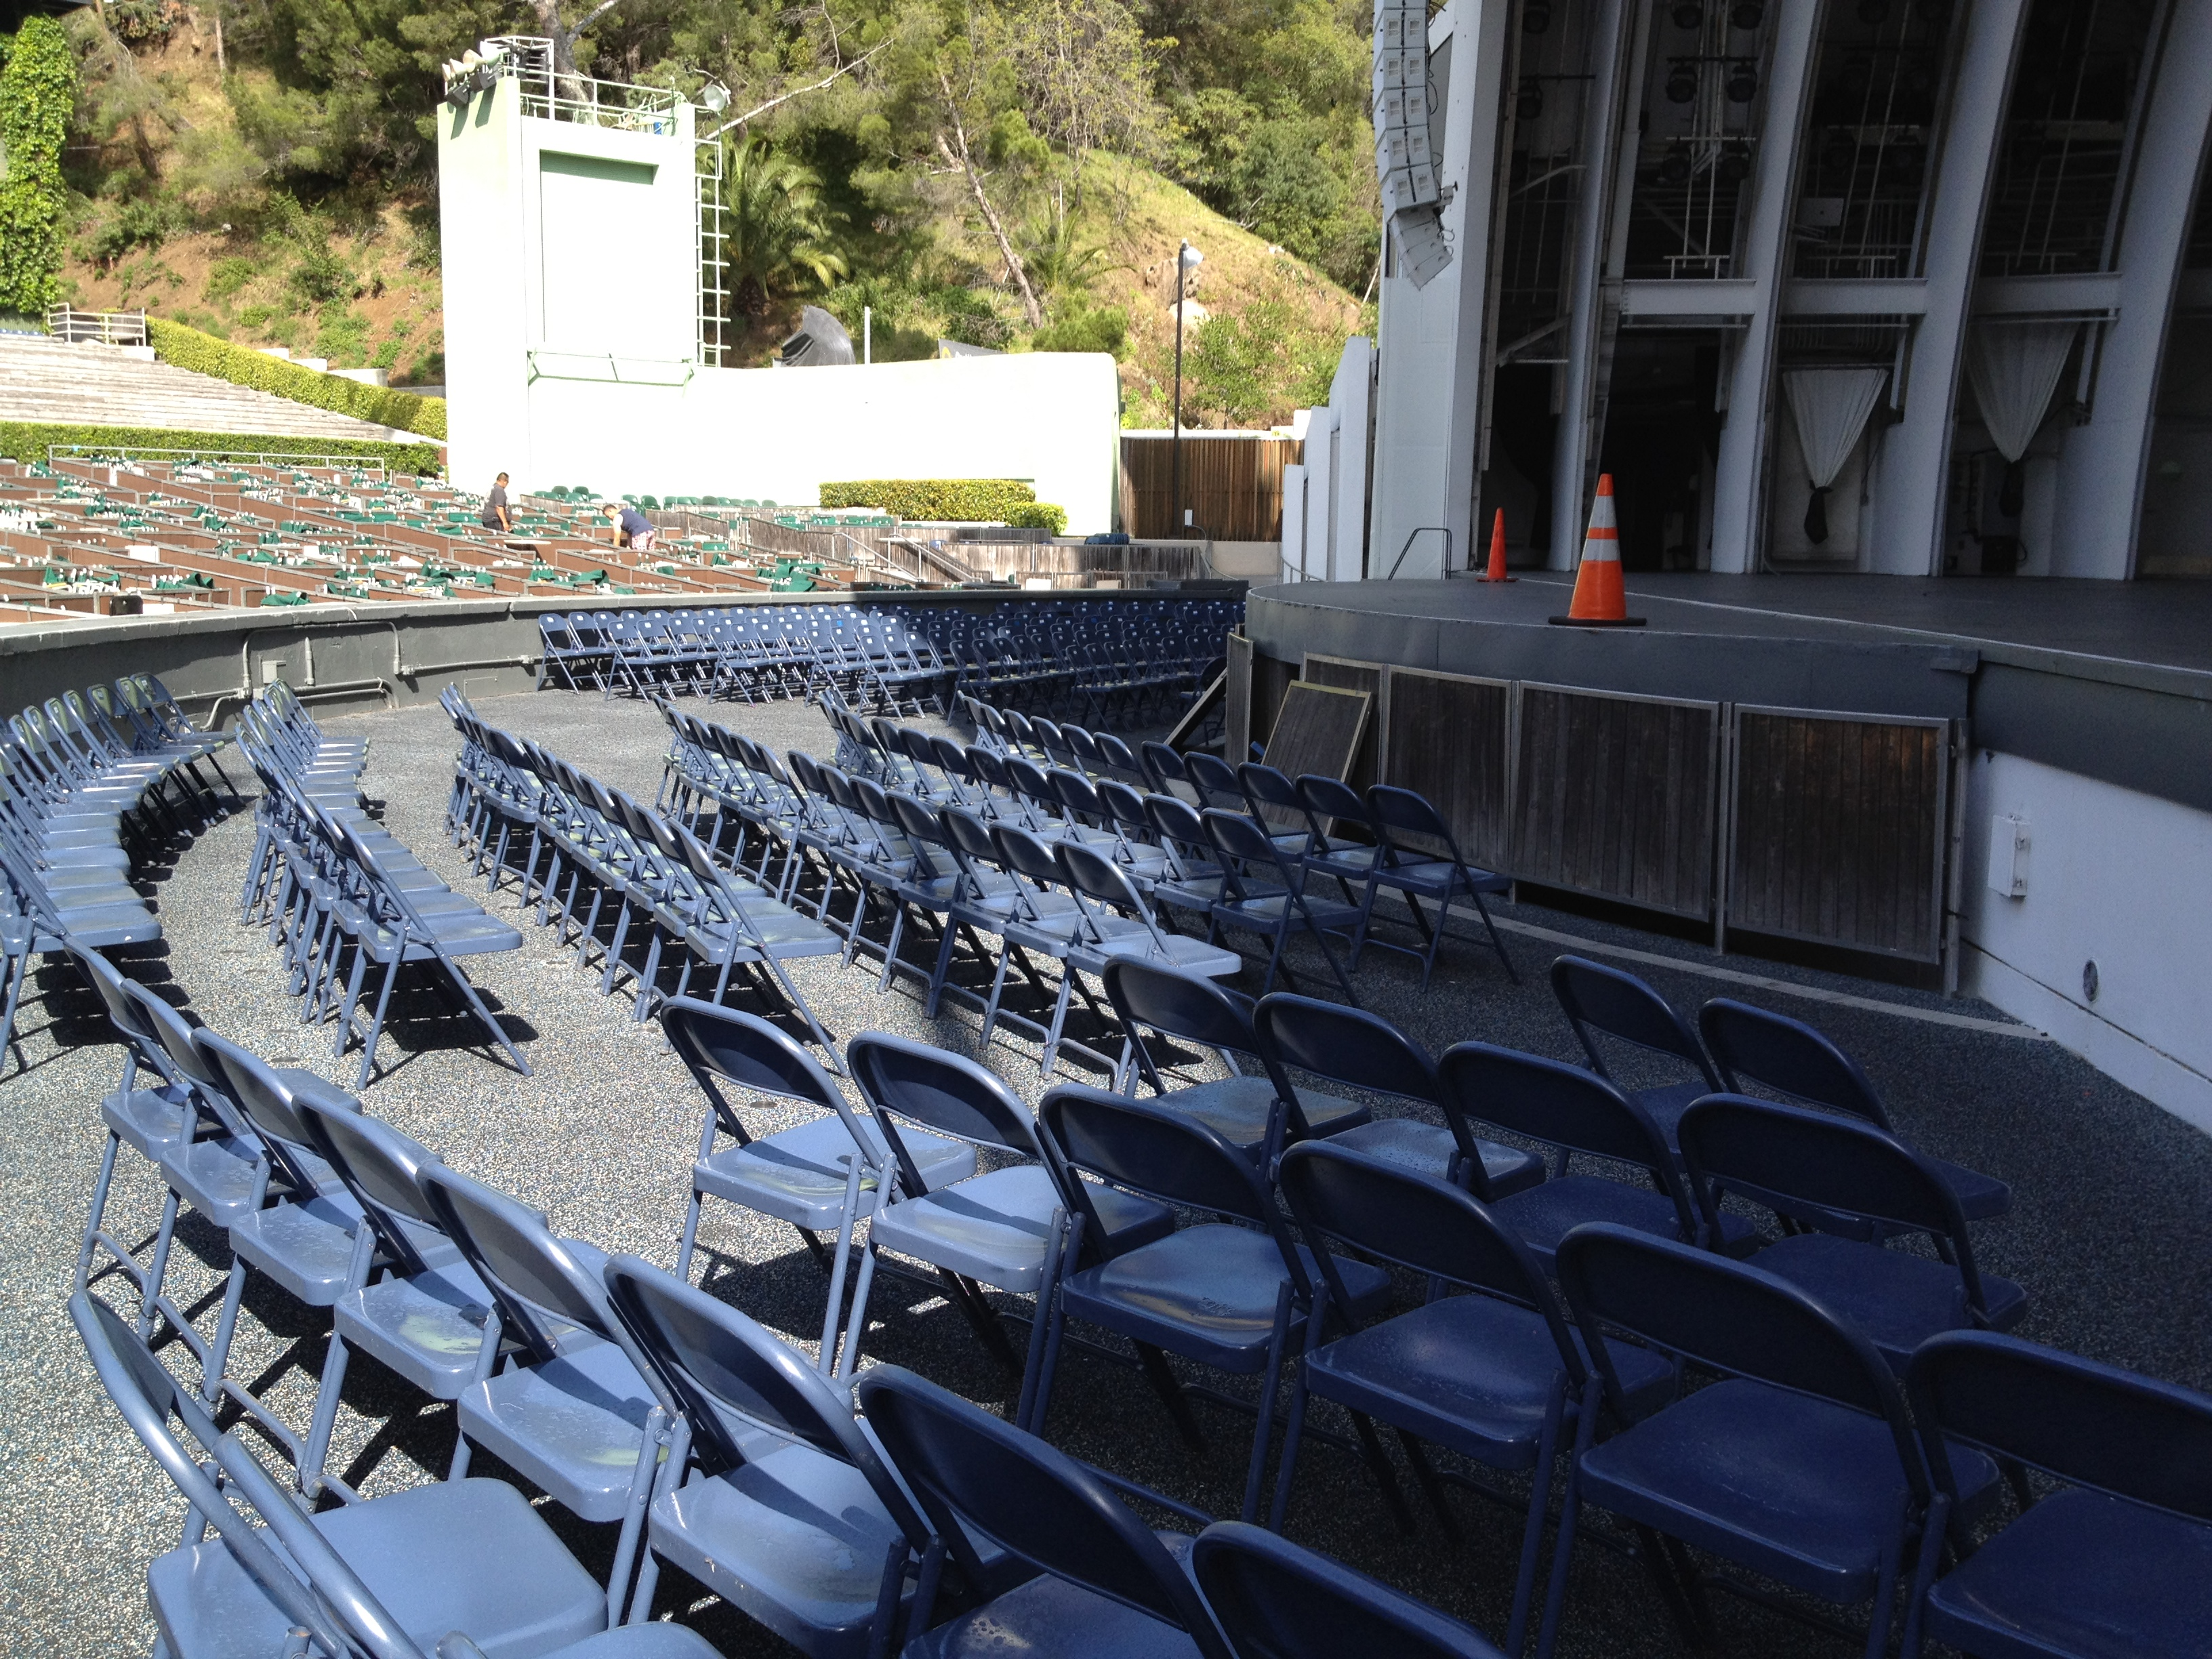 Pool section at the Hollywood Bowl